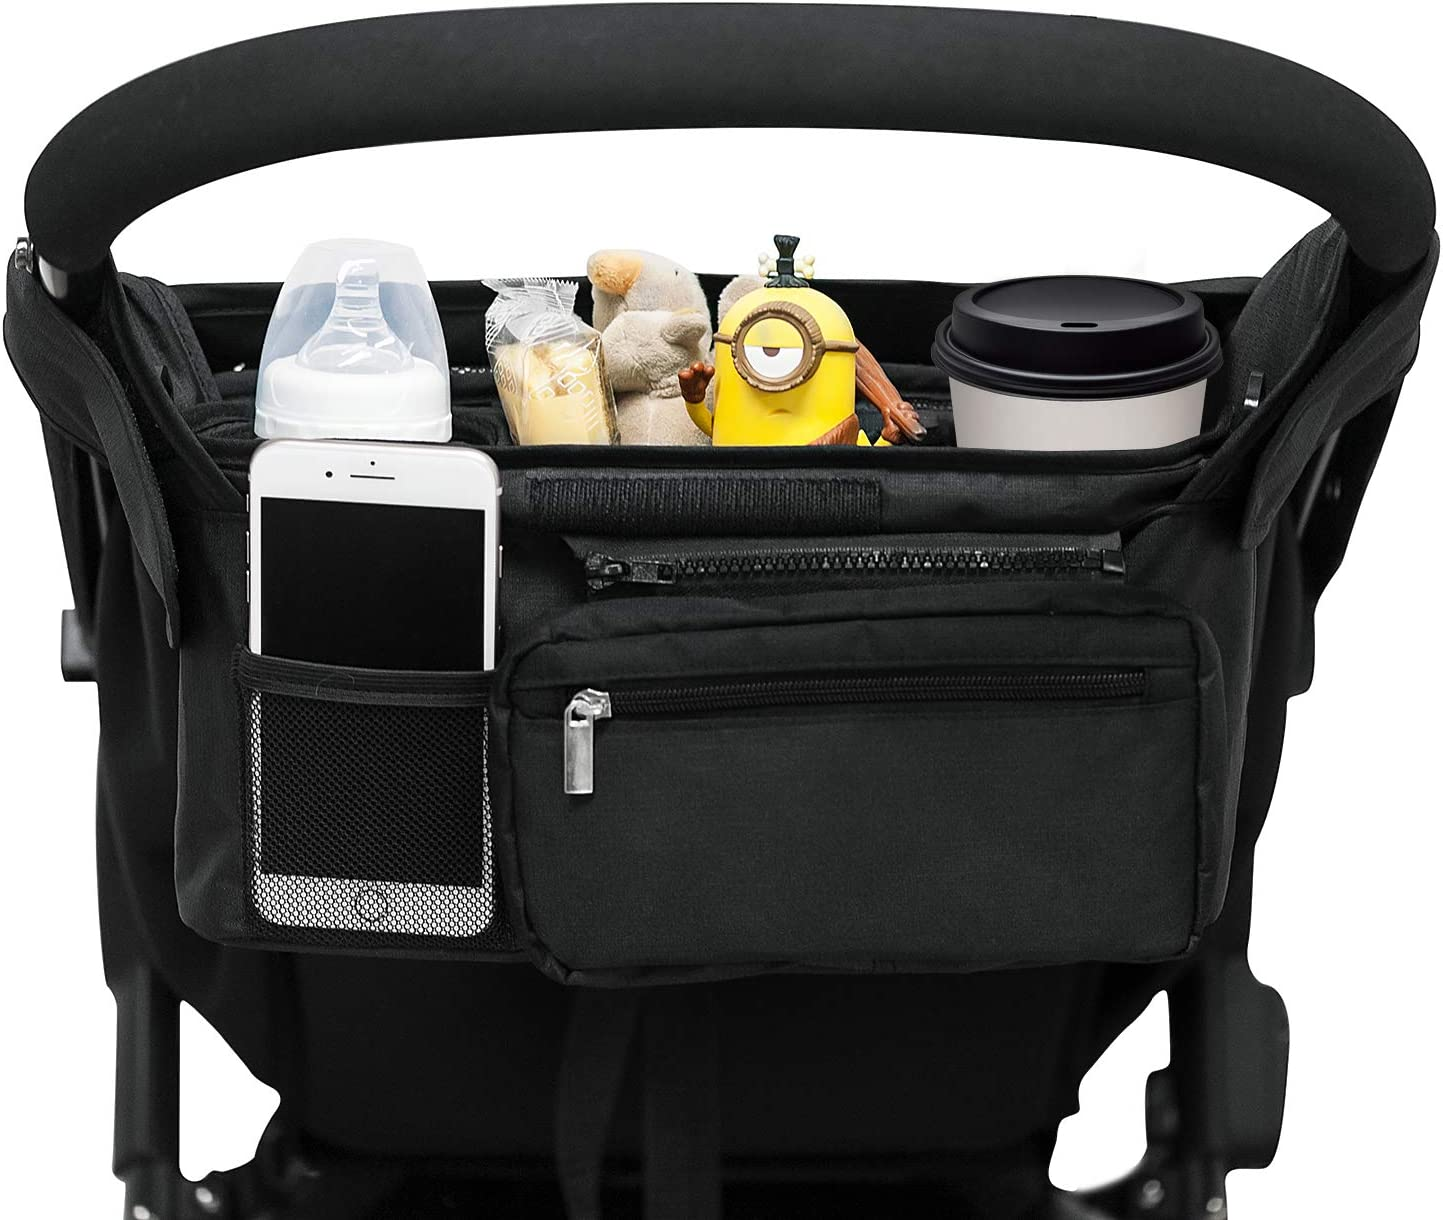 Universal Stroller Organizer with 2 Insulated Cup Holders, Lupantte Stroller Accessories, for Carrying Diaper, iPhone, Toys & Snacks, Fits Britax, Uppababy, Baby Jogger, Bugaboo and BOB Stroller.